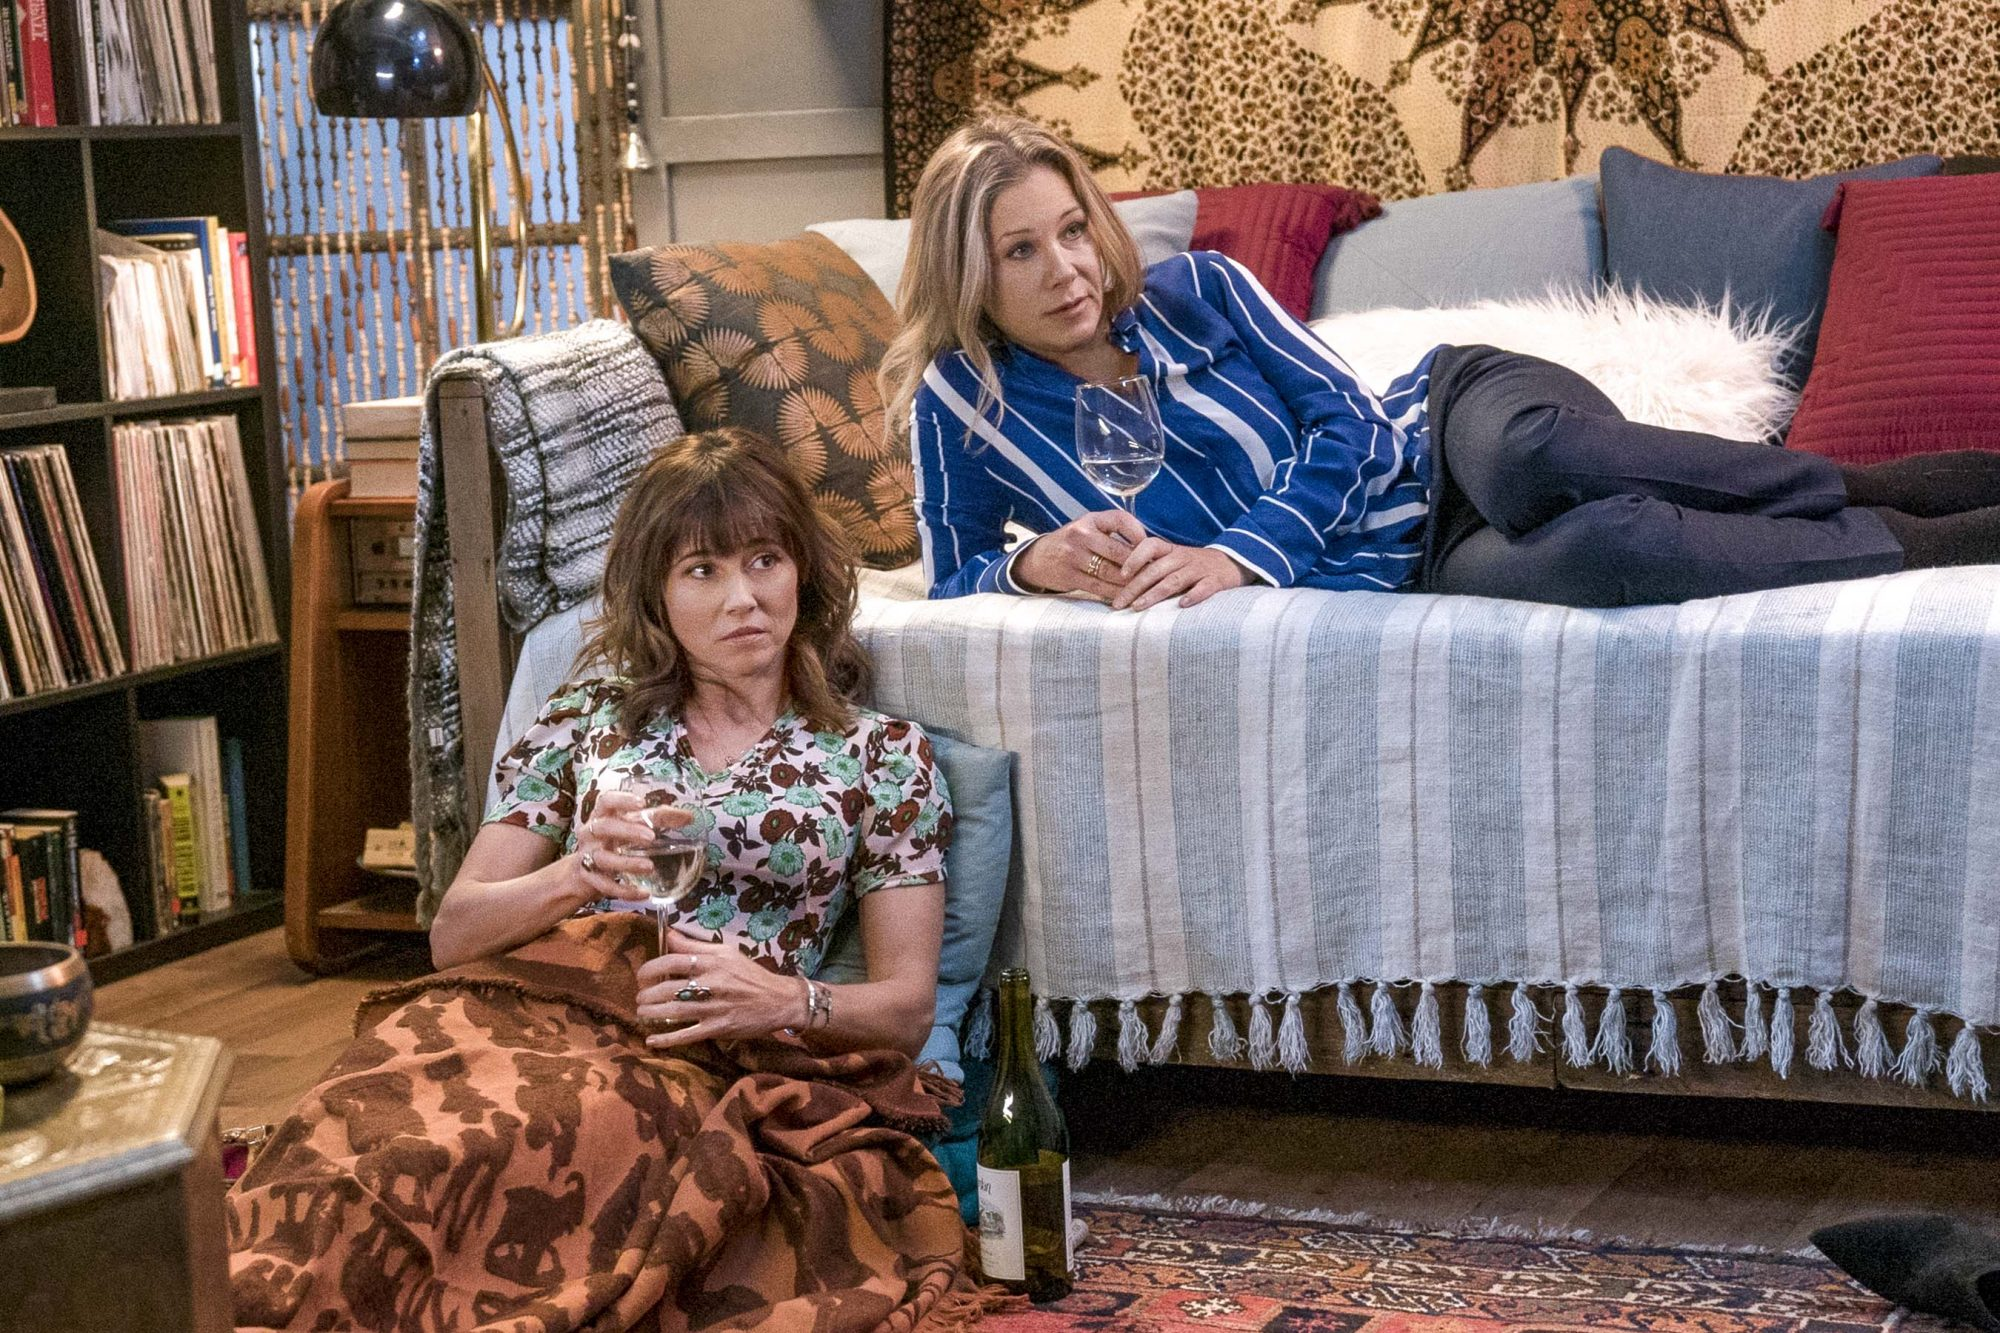 DEAD TO ME Season 1, Episode 6 Linda Cardellini and Christina Applegate CR: Saeed Adyani/Netflix